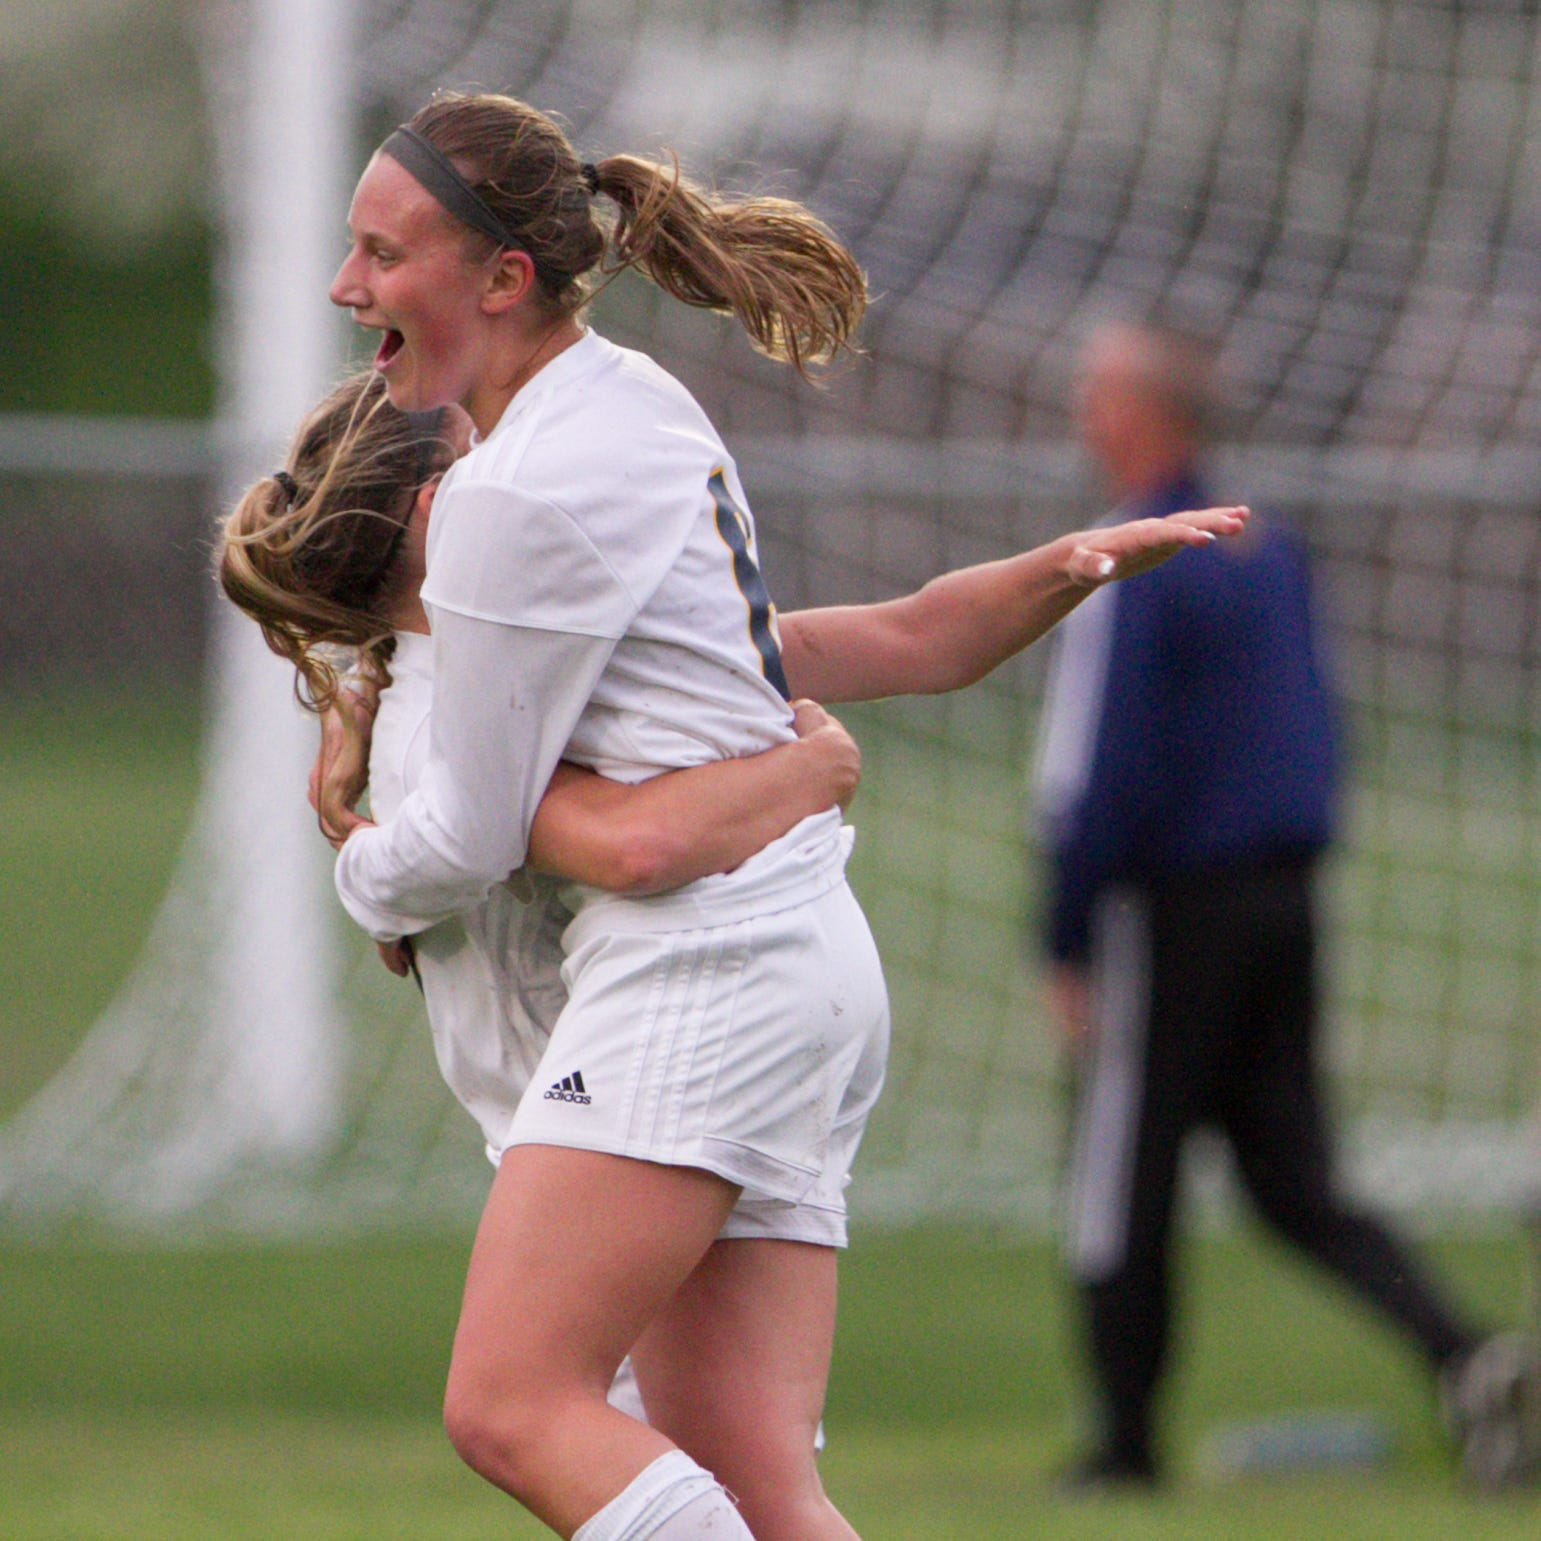 Changing of the guard? Hartland girls soccer wins third straight vs. Brighton